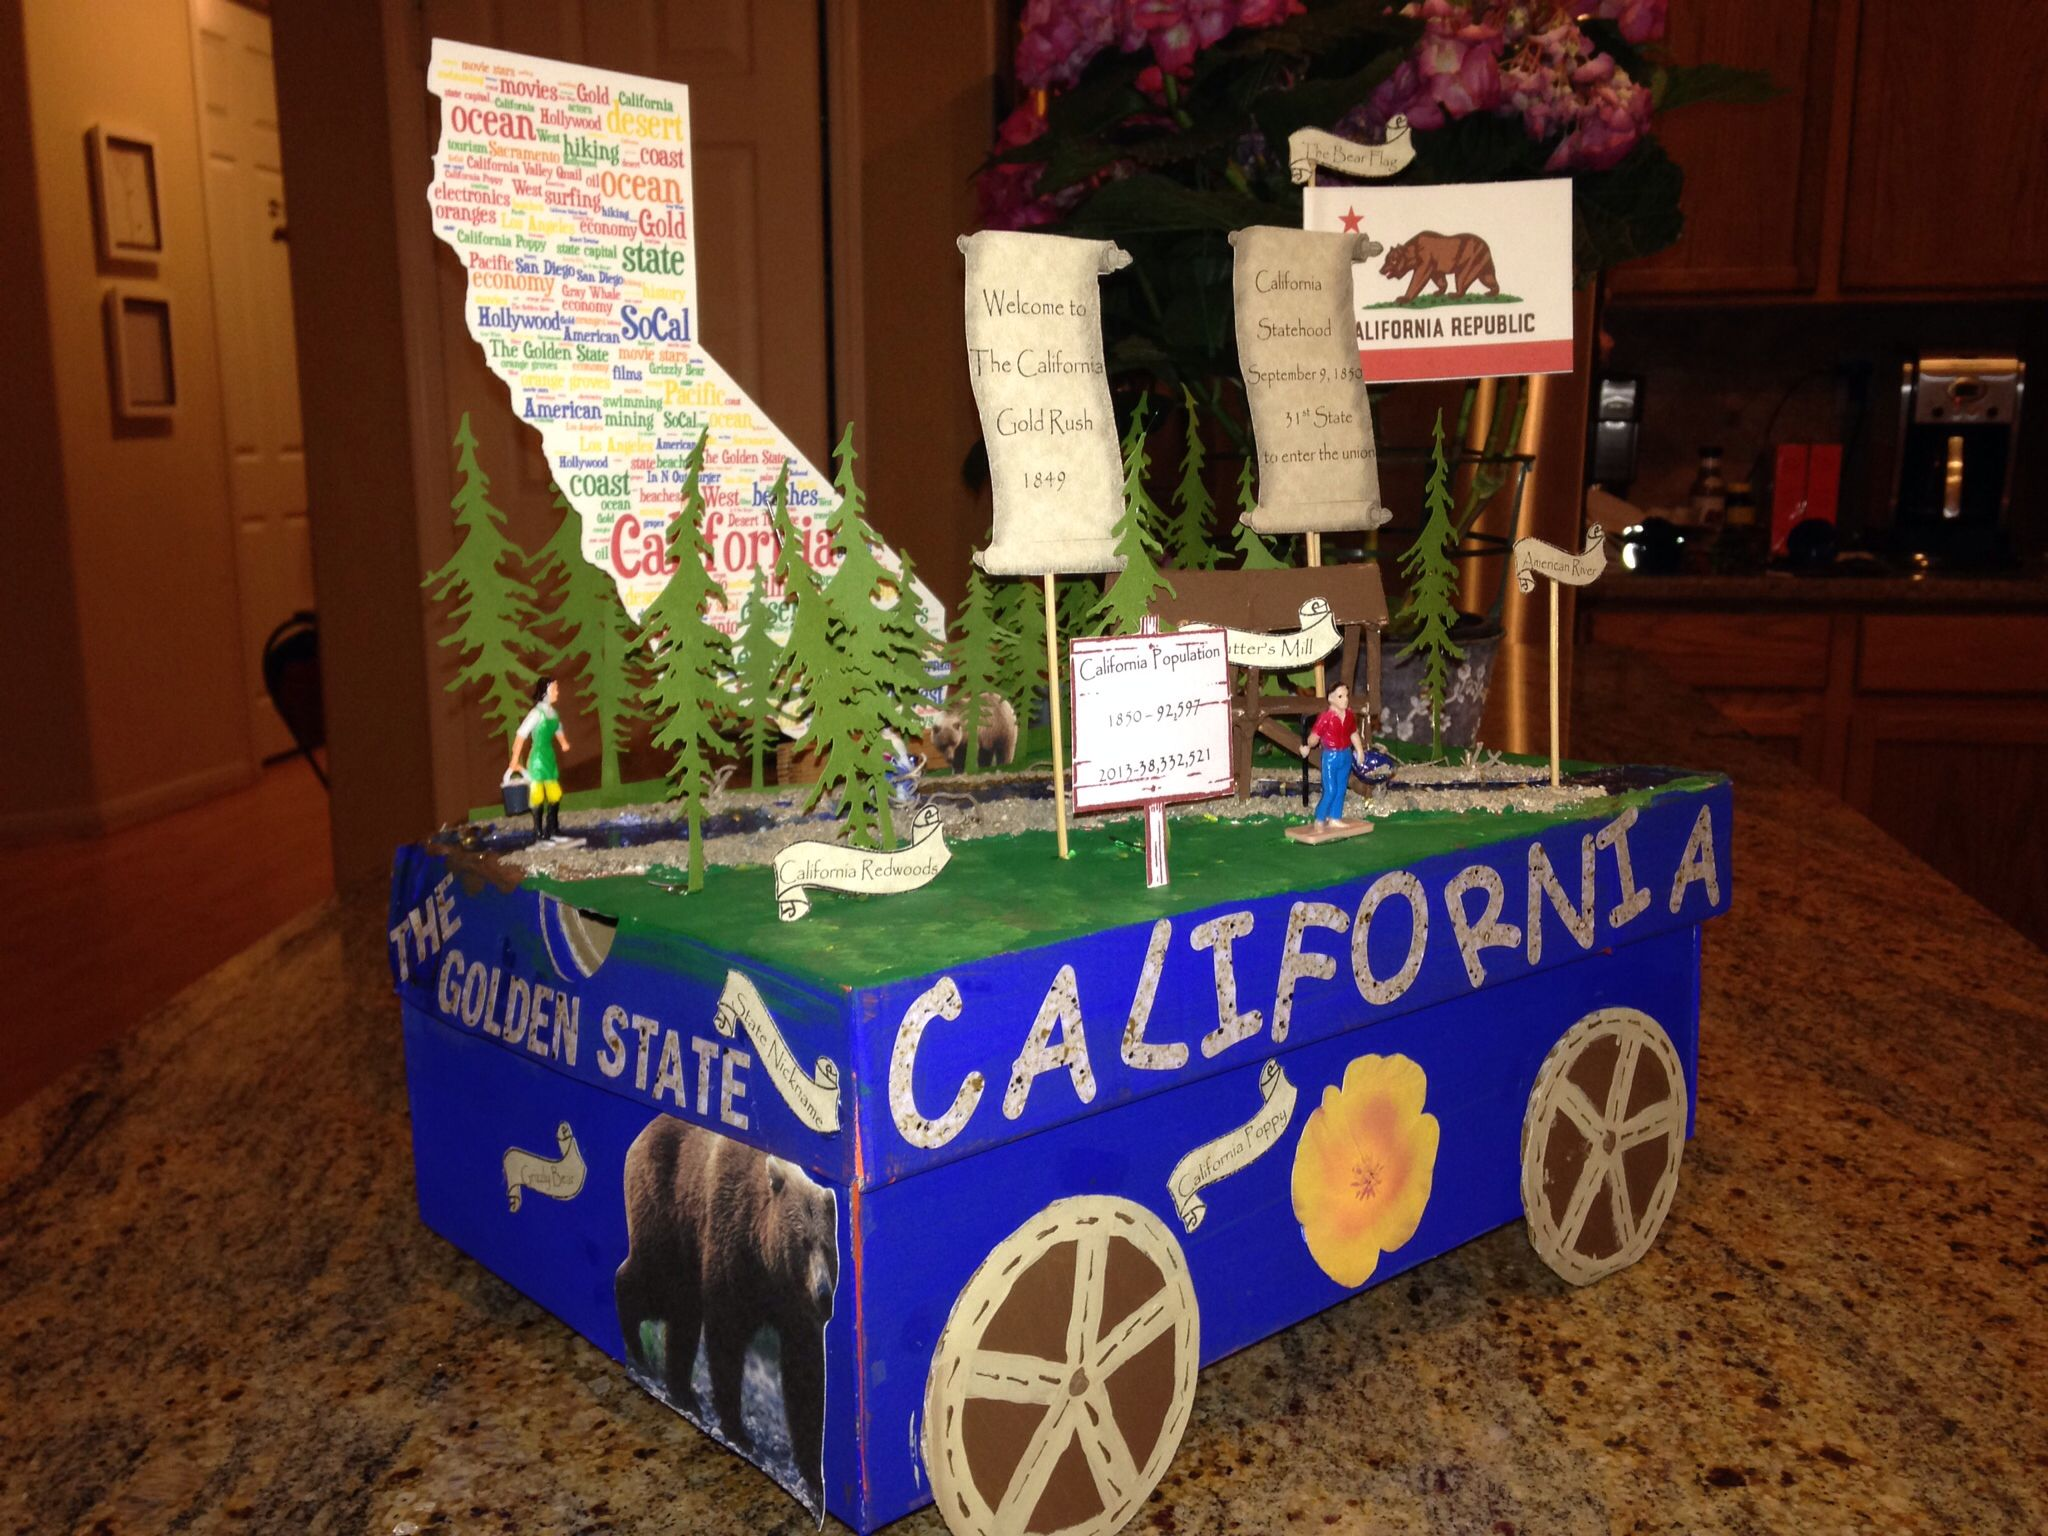 California State Float Project Gold Rush Theme Ed The Cameo Silhouette